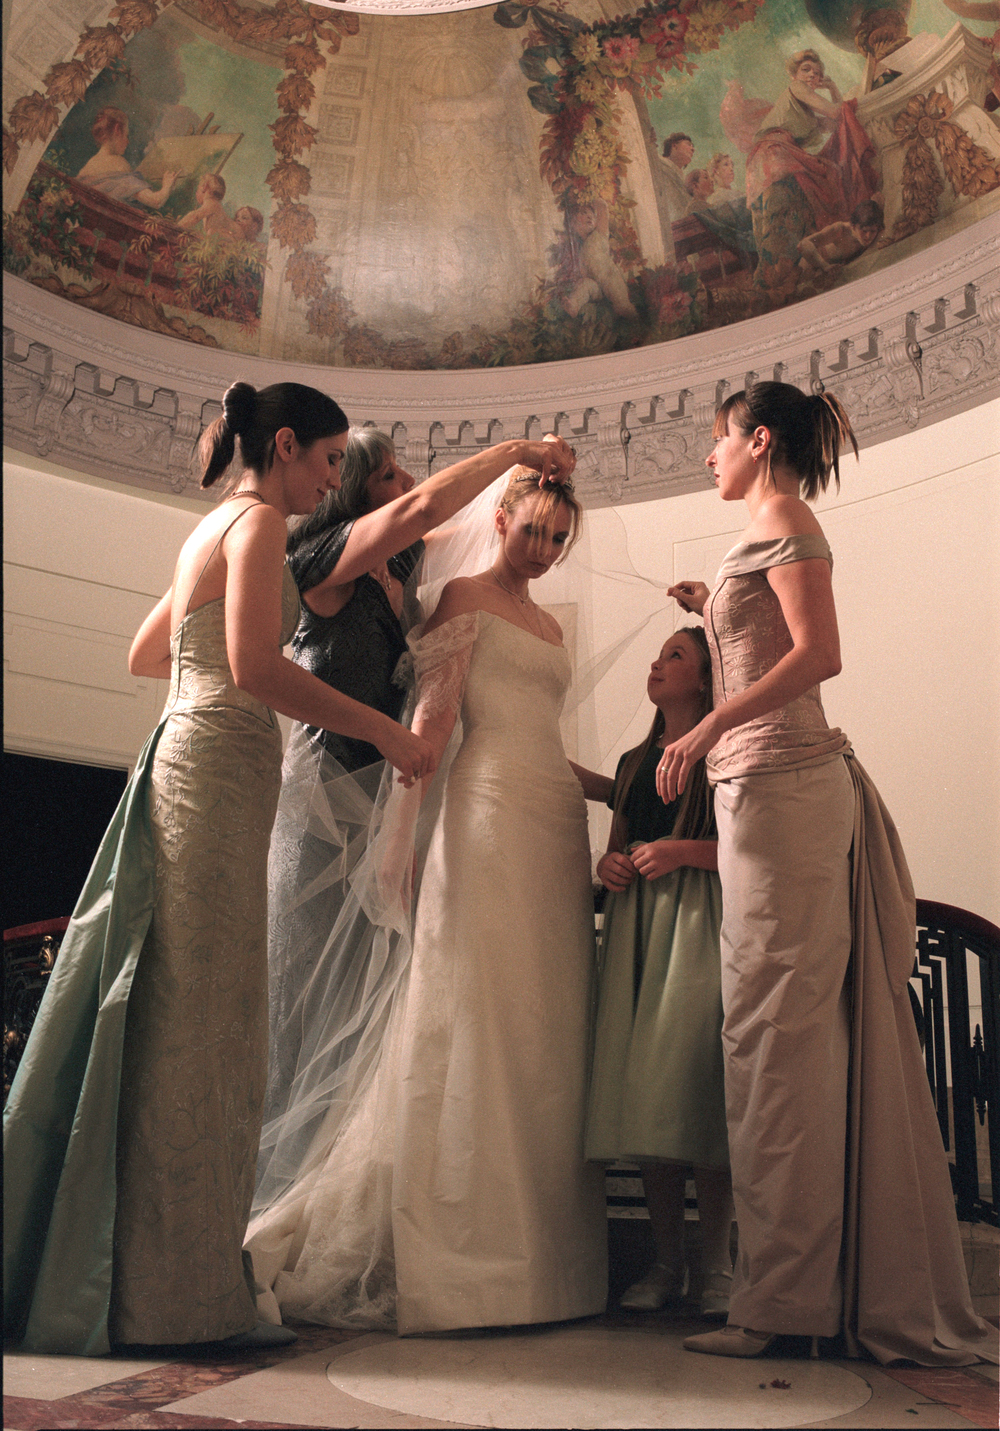 Fillmore's own wedding in 1999. This looks like a painting.